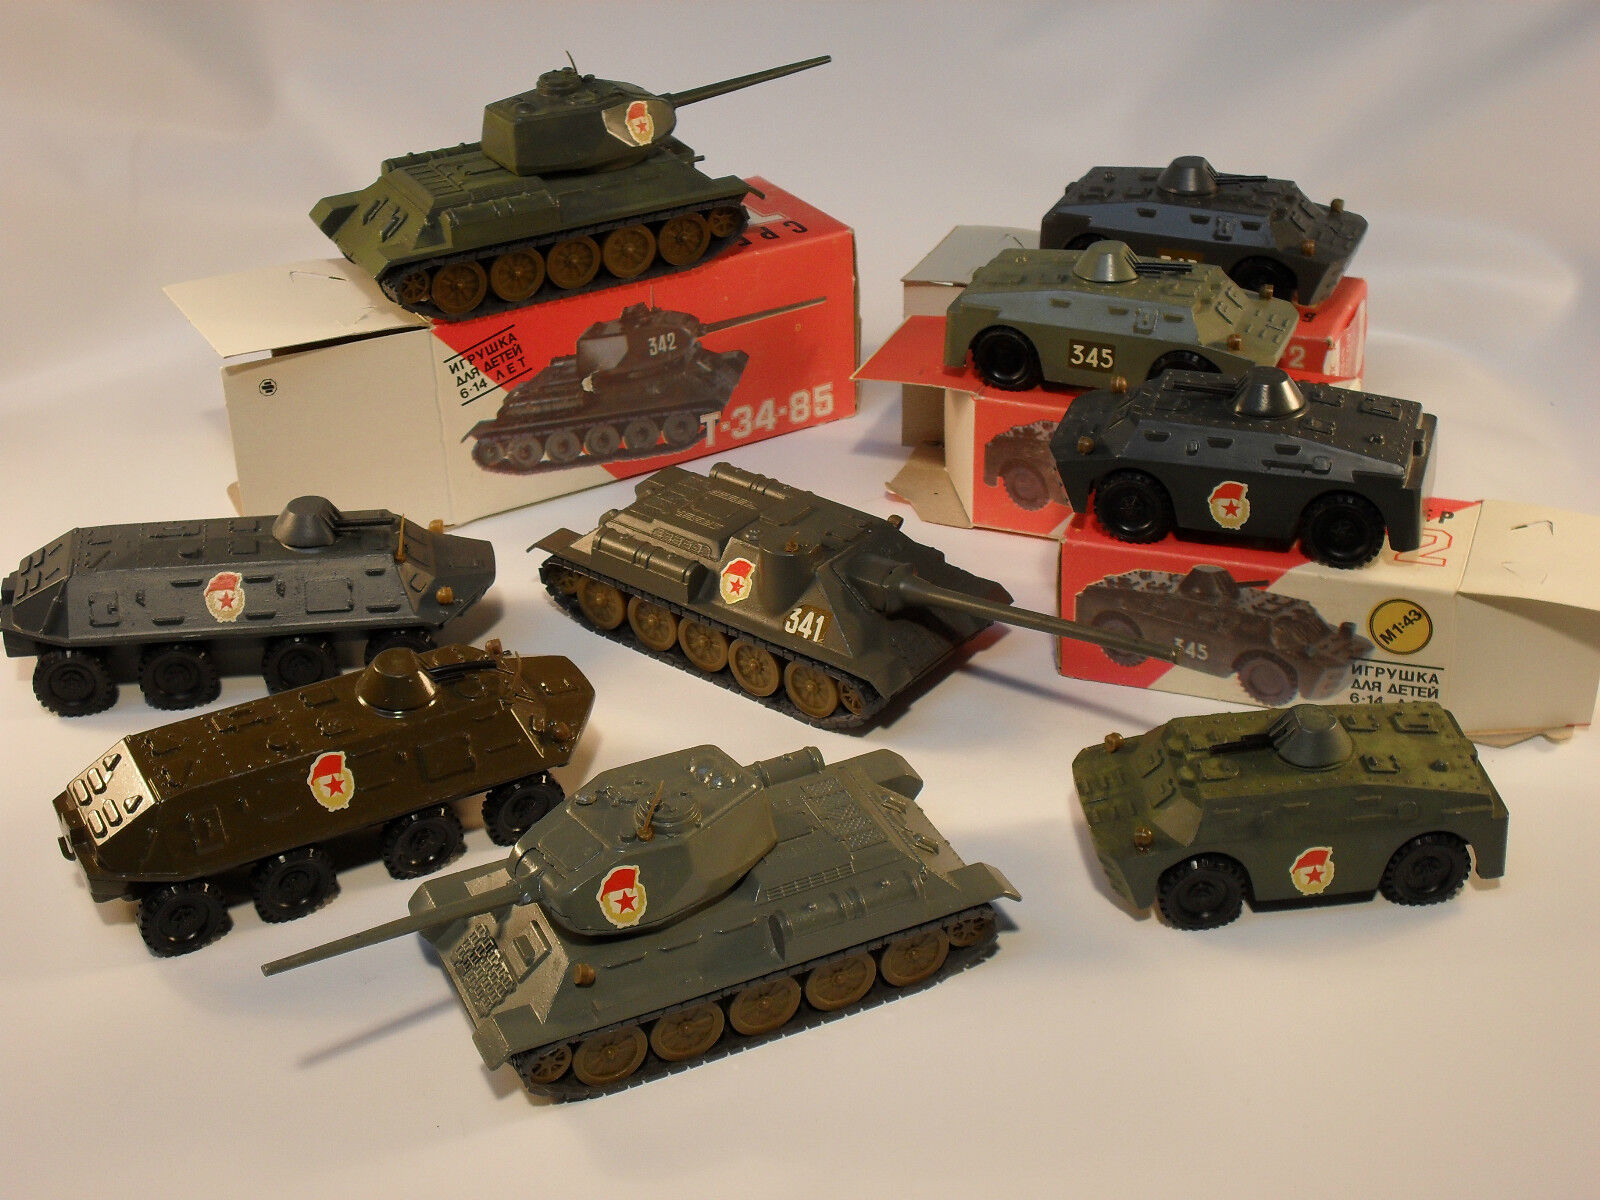 LARGE LOT 1 43 43 43 RUSSIA T-34 CY-100 TANKS, 8 WHEEL CARRIER,ARMORED CARS some w BOX b3d7b7